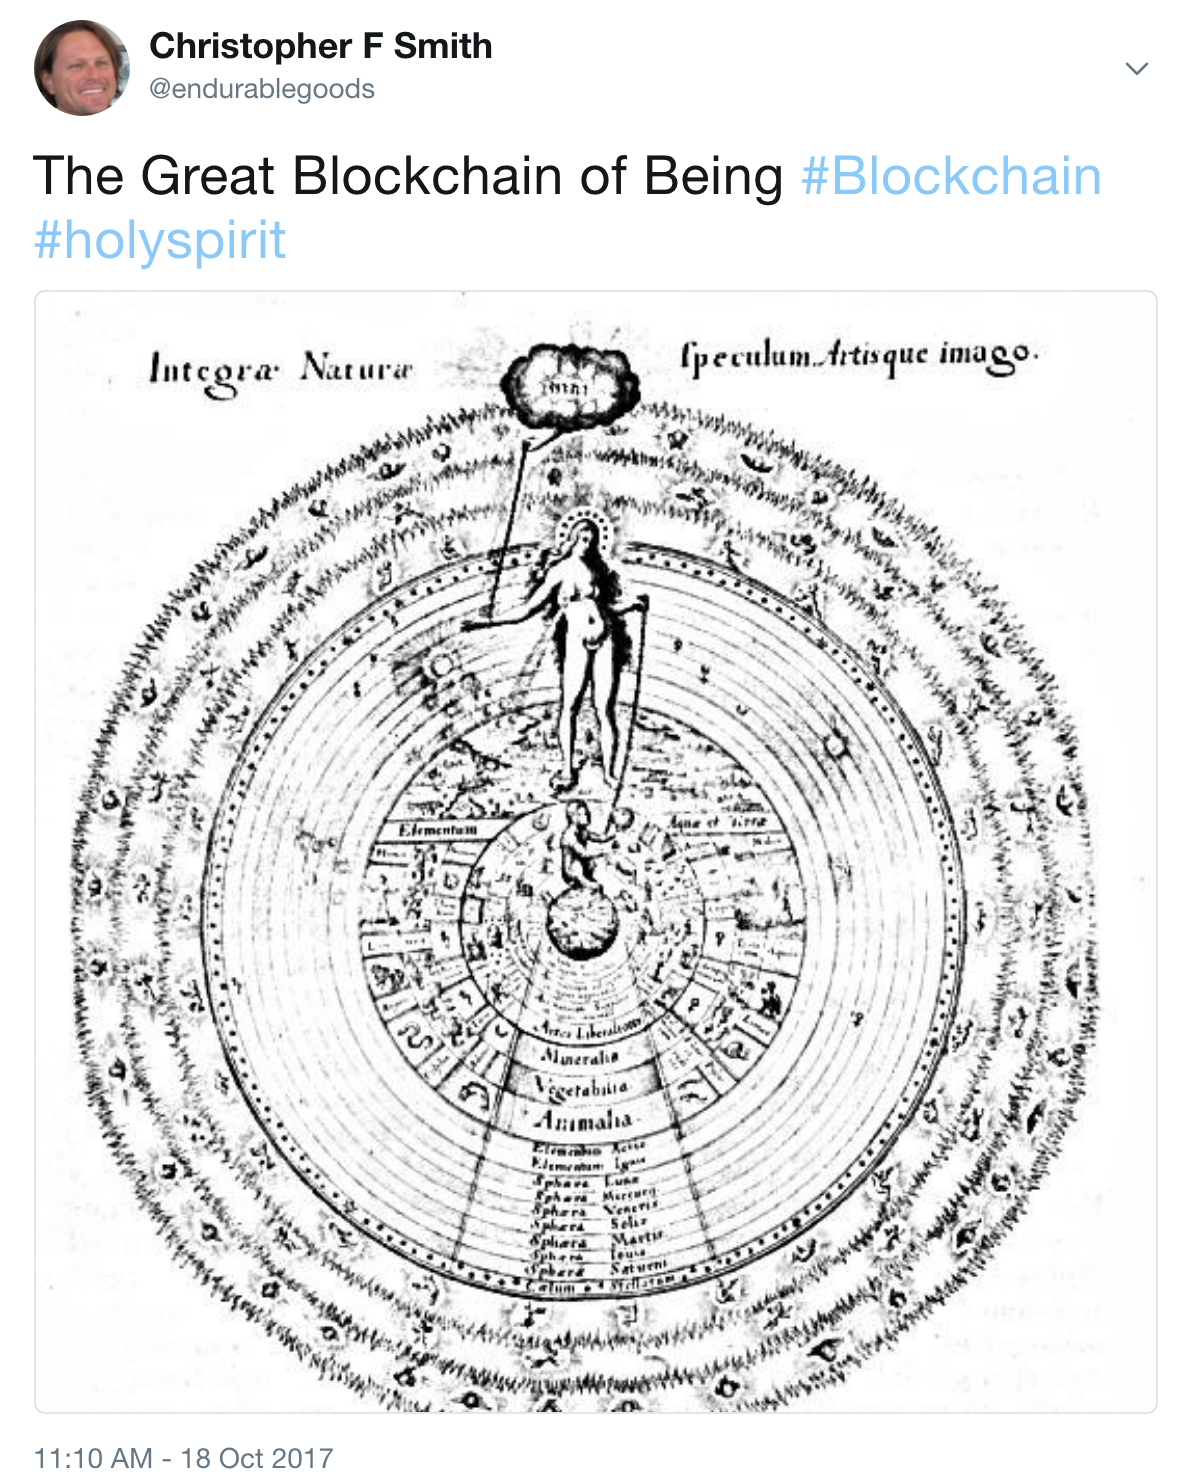 The Great Blockchain of Being